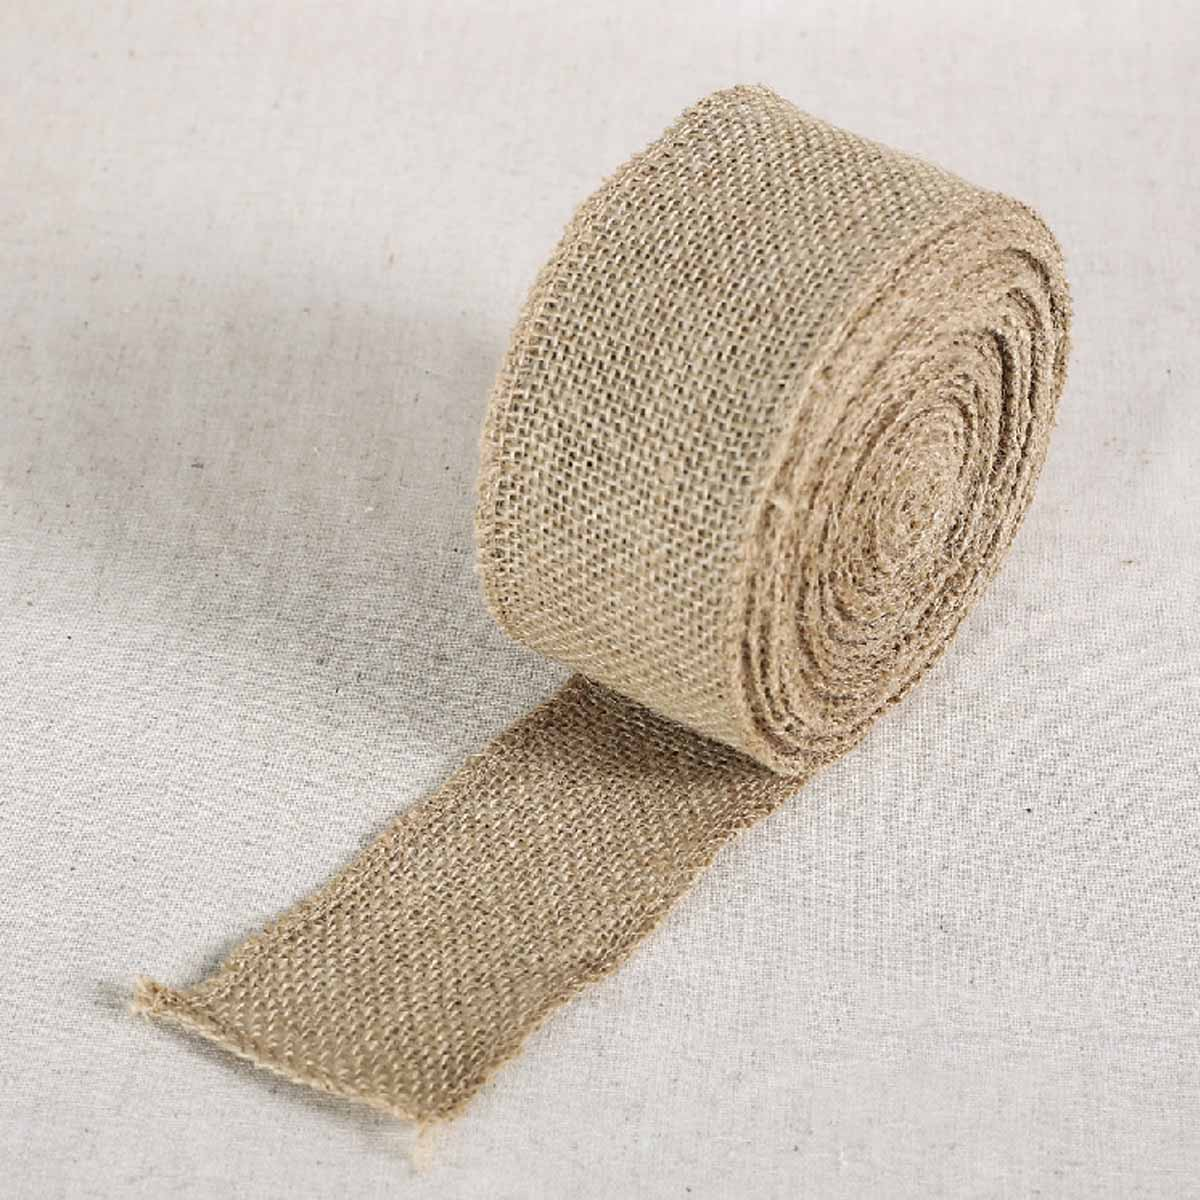 Compare prices on diy wedding projects online shopping for Burlap ribbon craft ideas